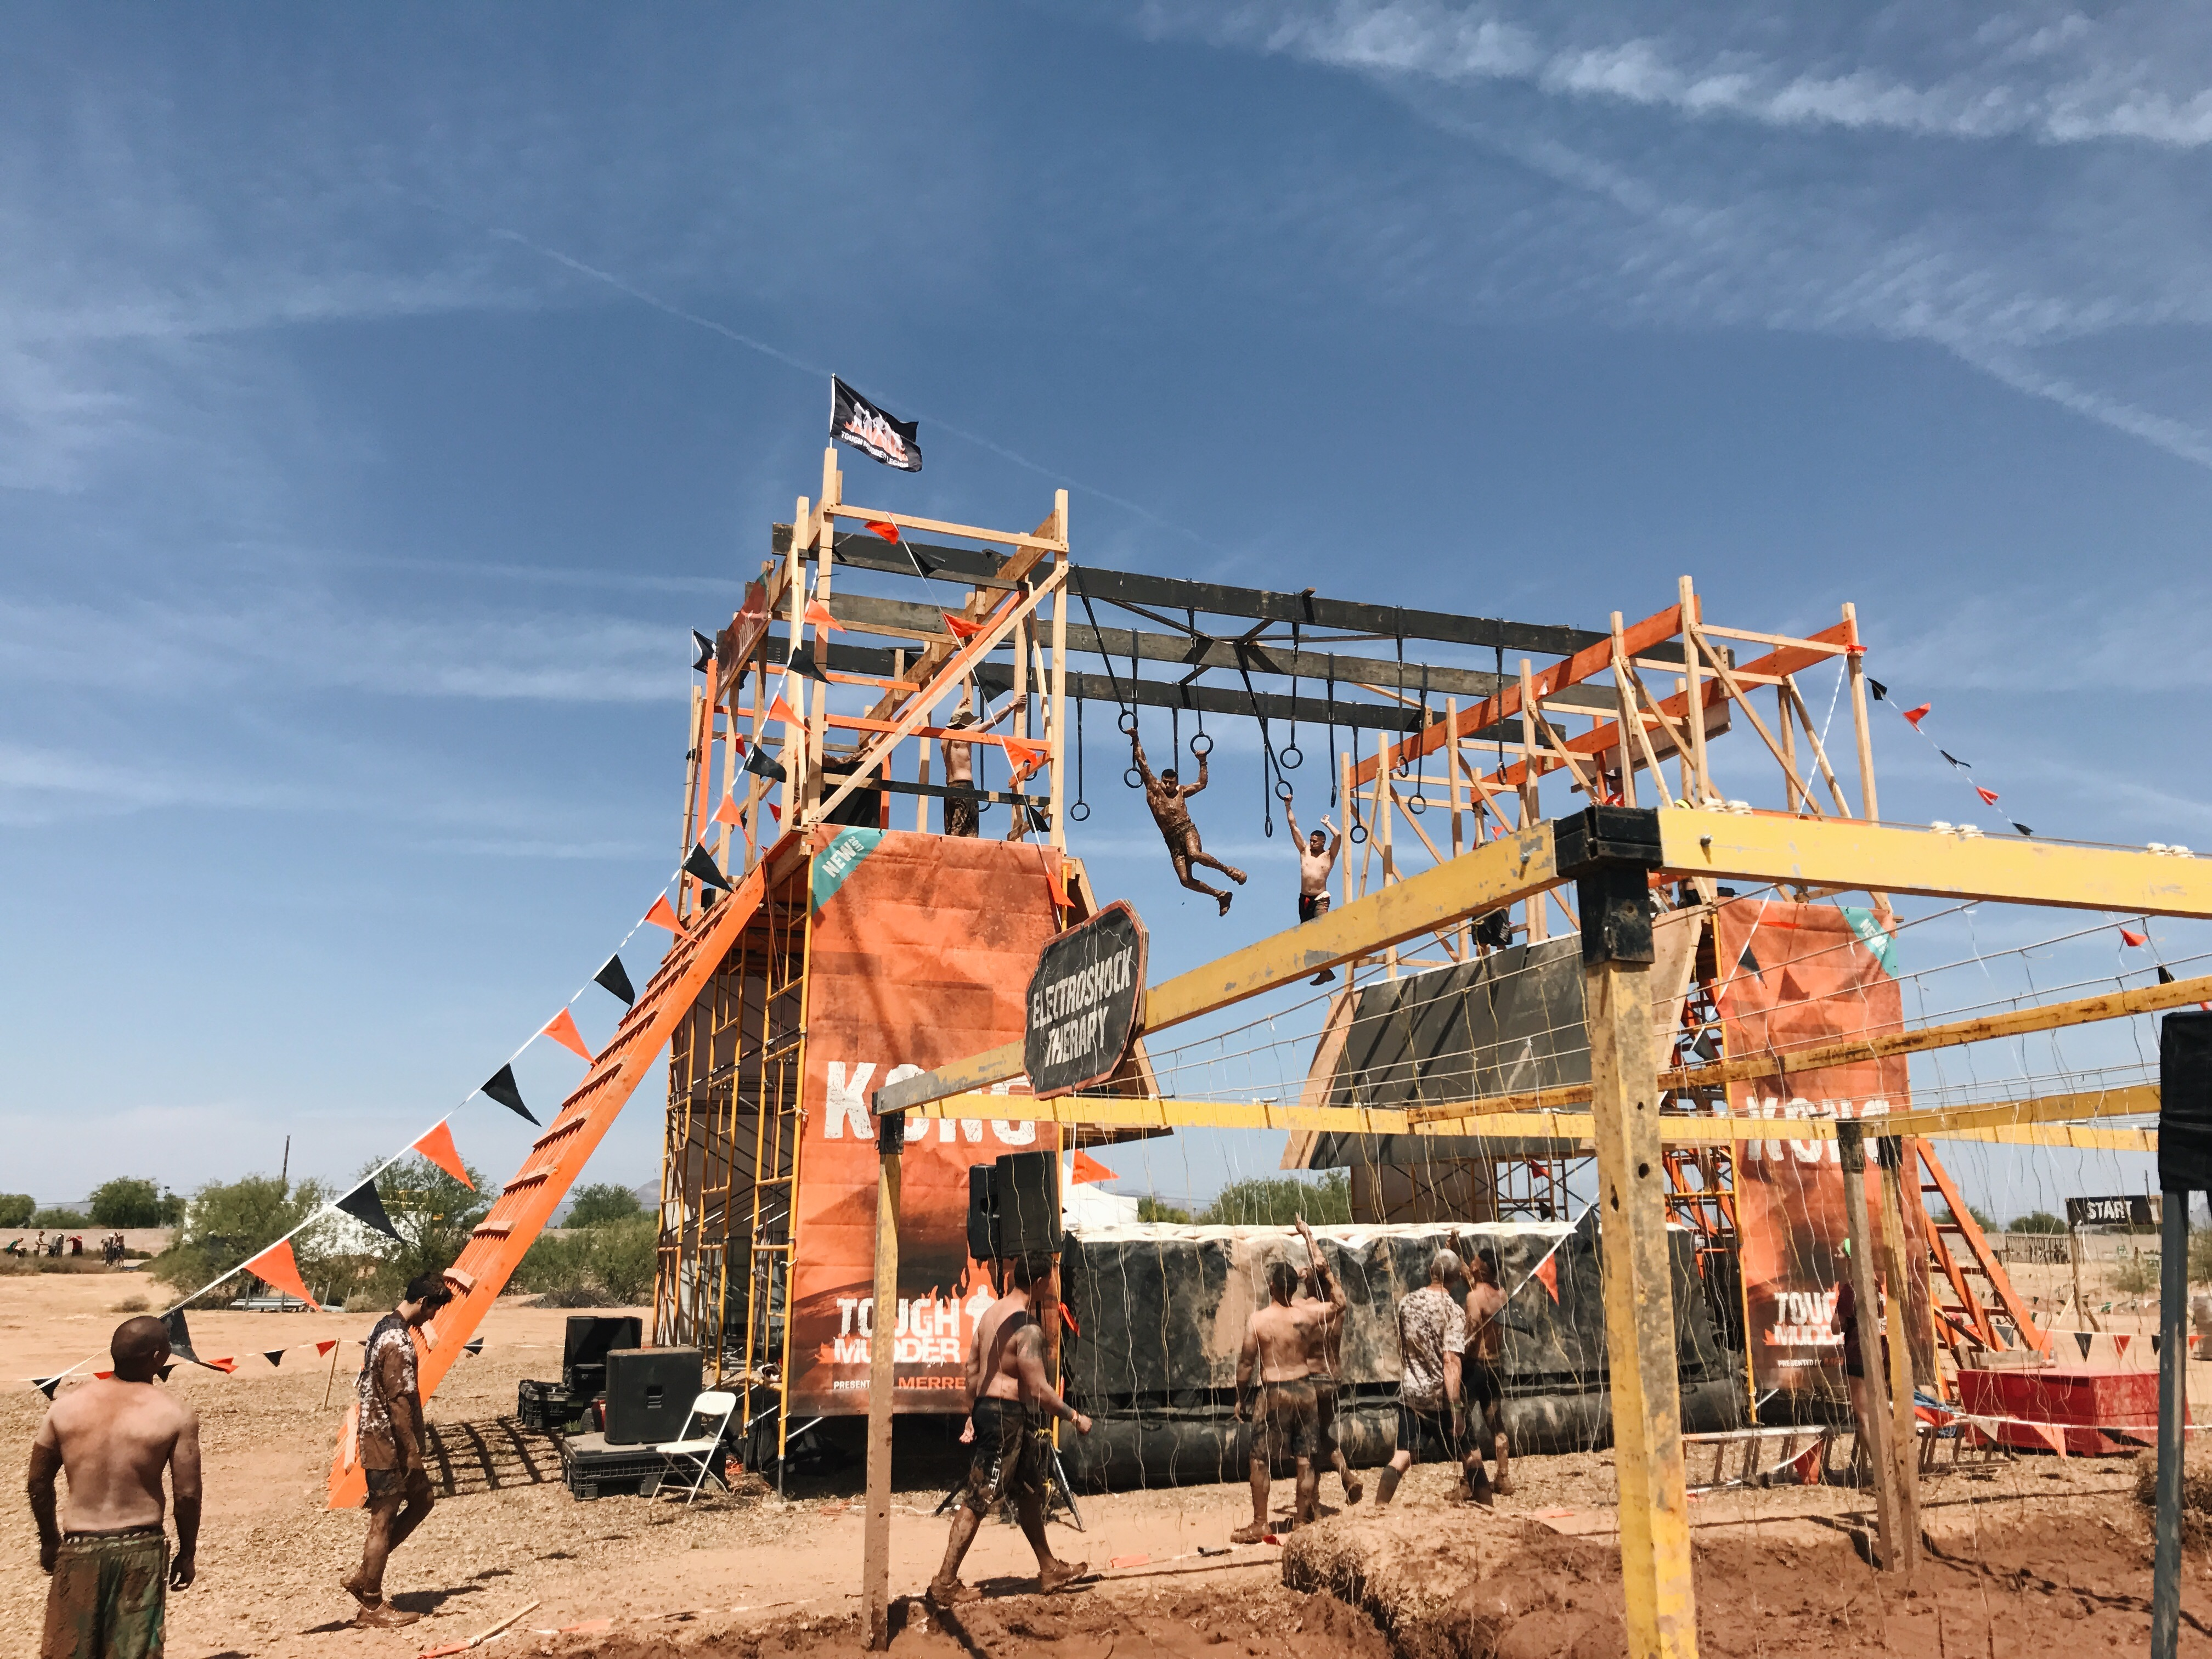 Flat Muddy And Friendly The Arizona Tough Mudder Review